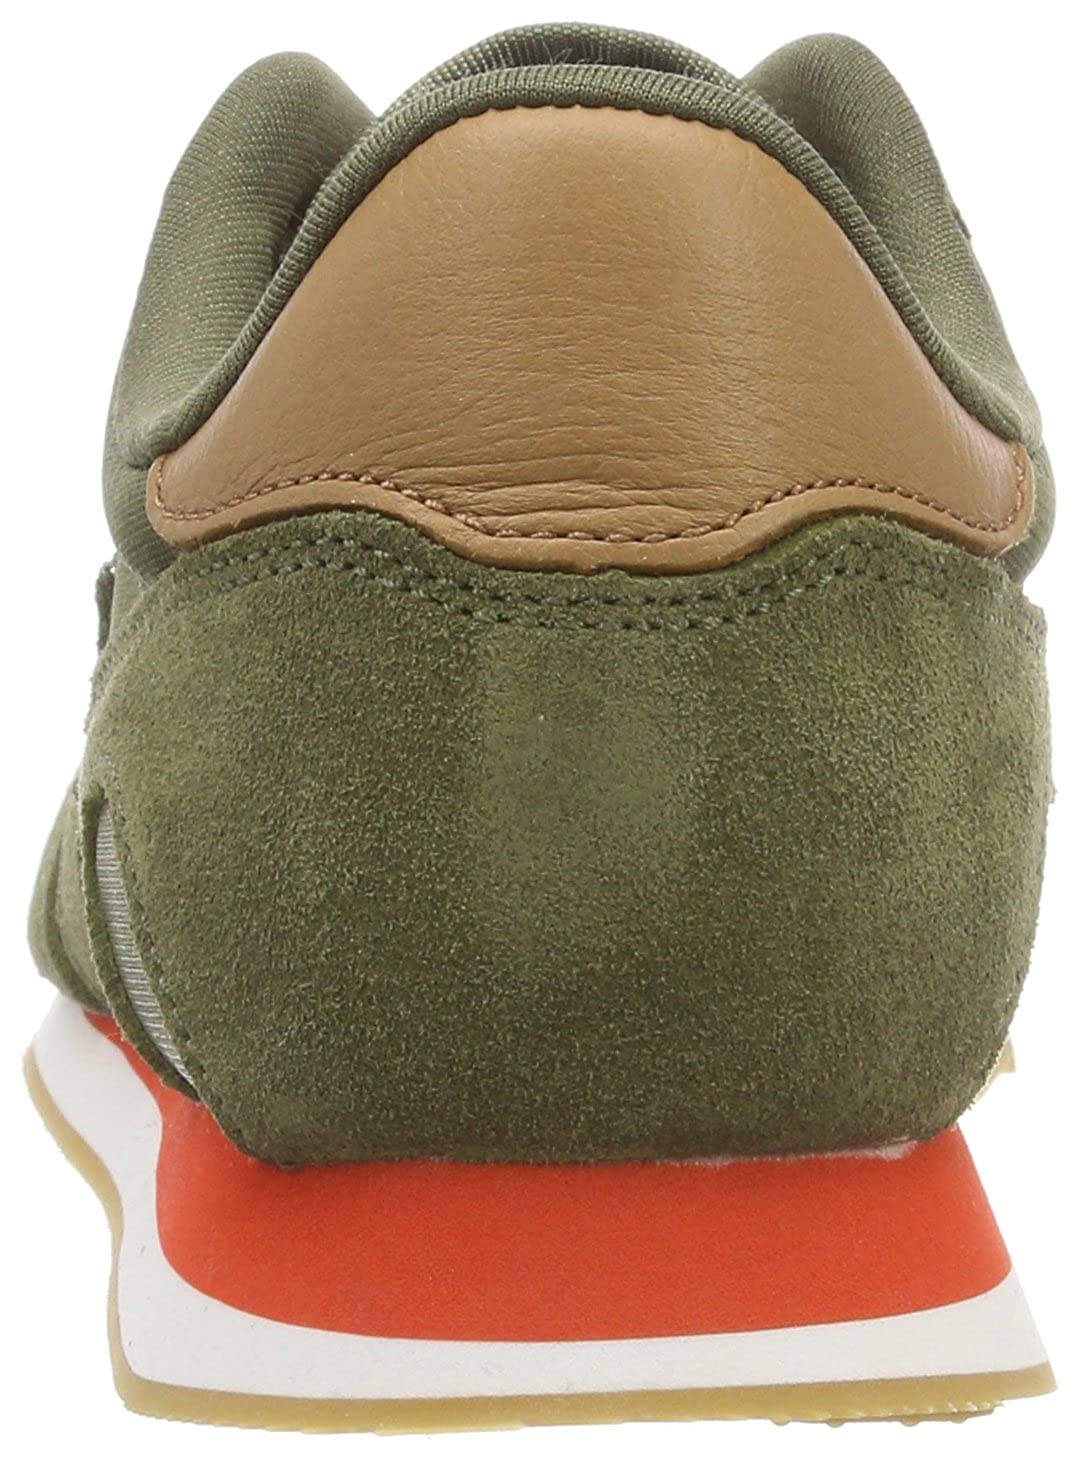 Converse Unisex-Erwachsene (Medium Thunderbolt OX Medium Olive/Bright Poppy Sneaker Grün (Medium Unisex-Erwachsene Olive/Bright Poppy 348) 679a23